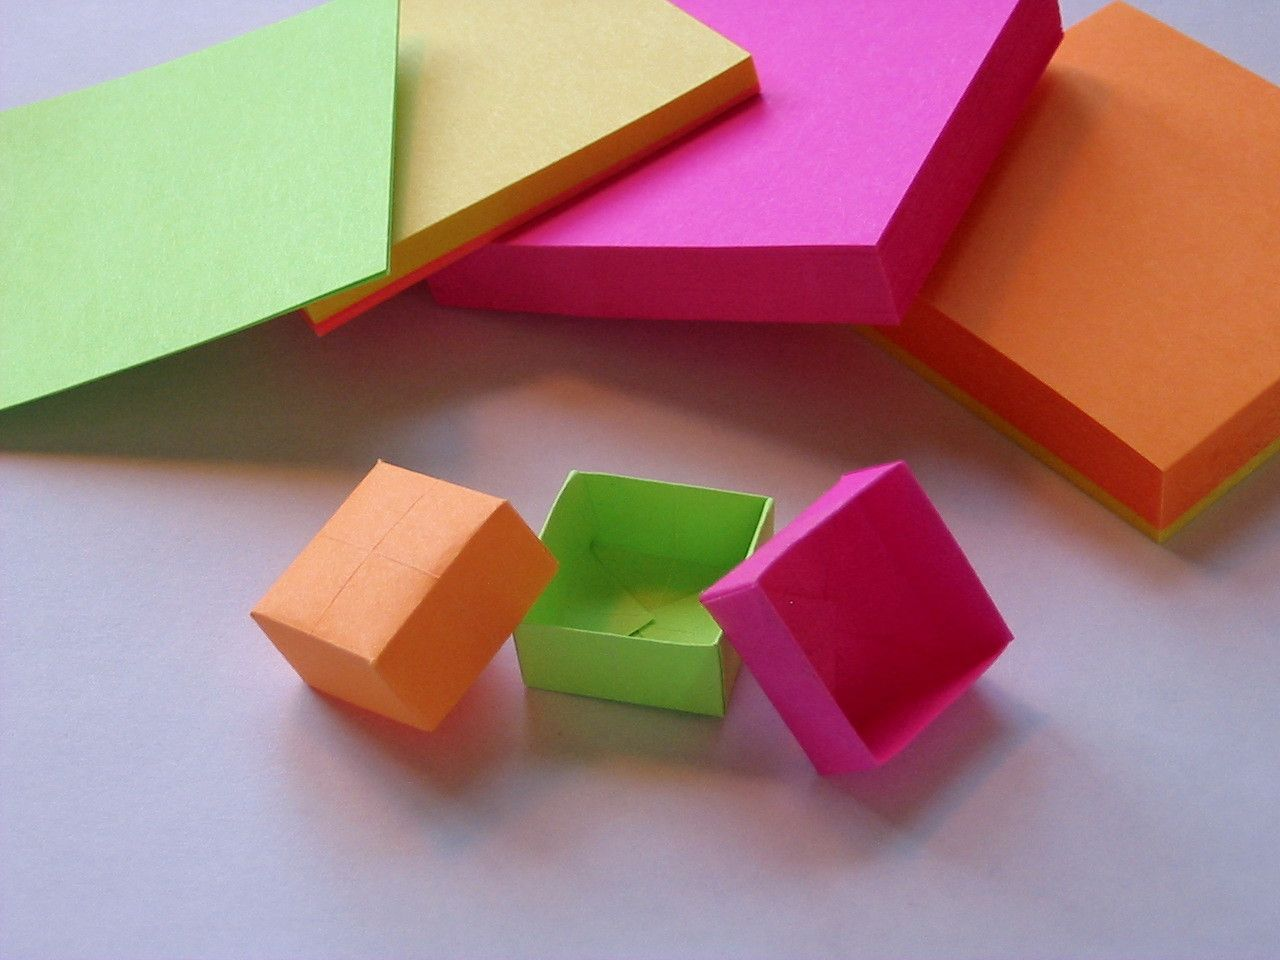 Origami Post-it Box   Sticky notes and Origami - photo#49